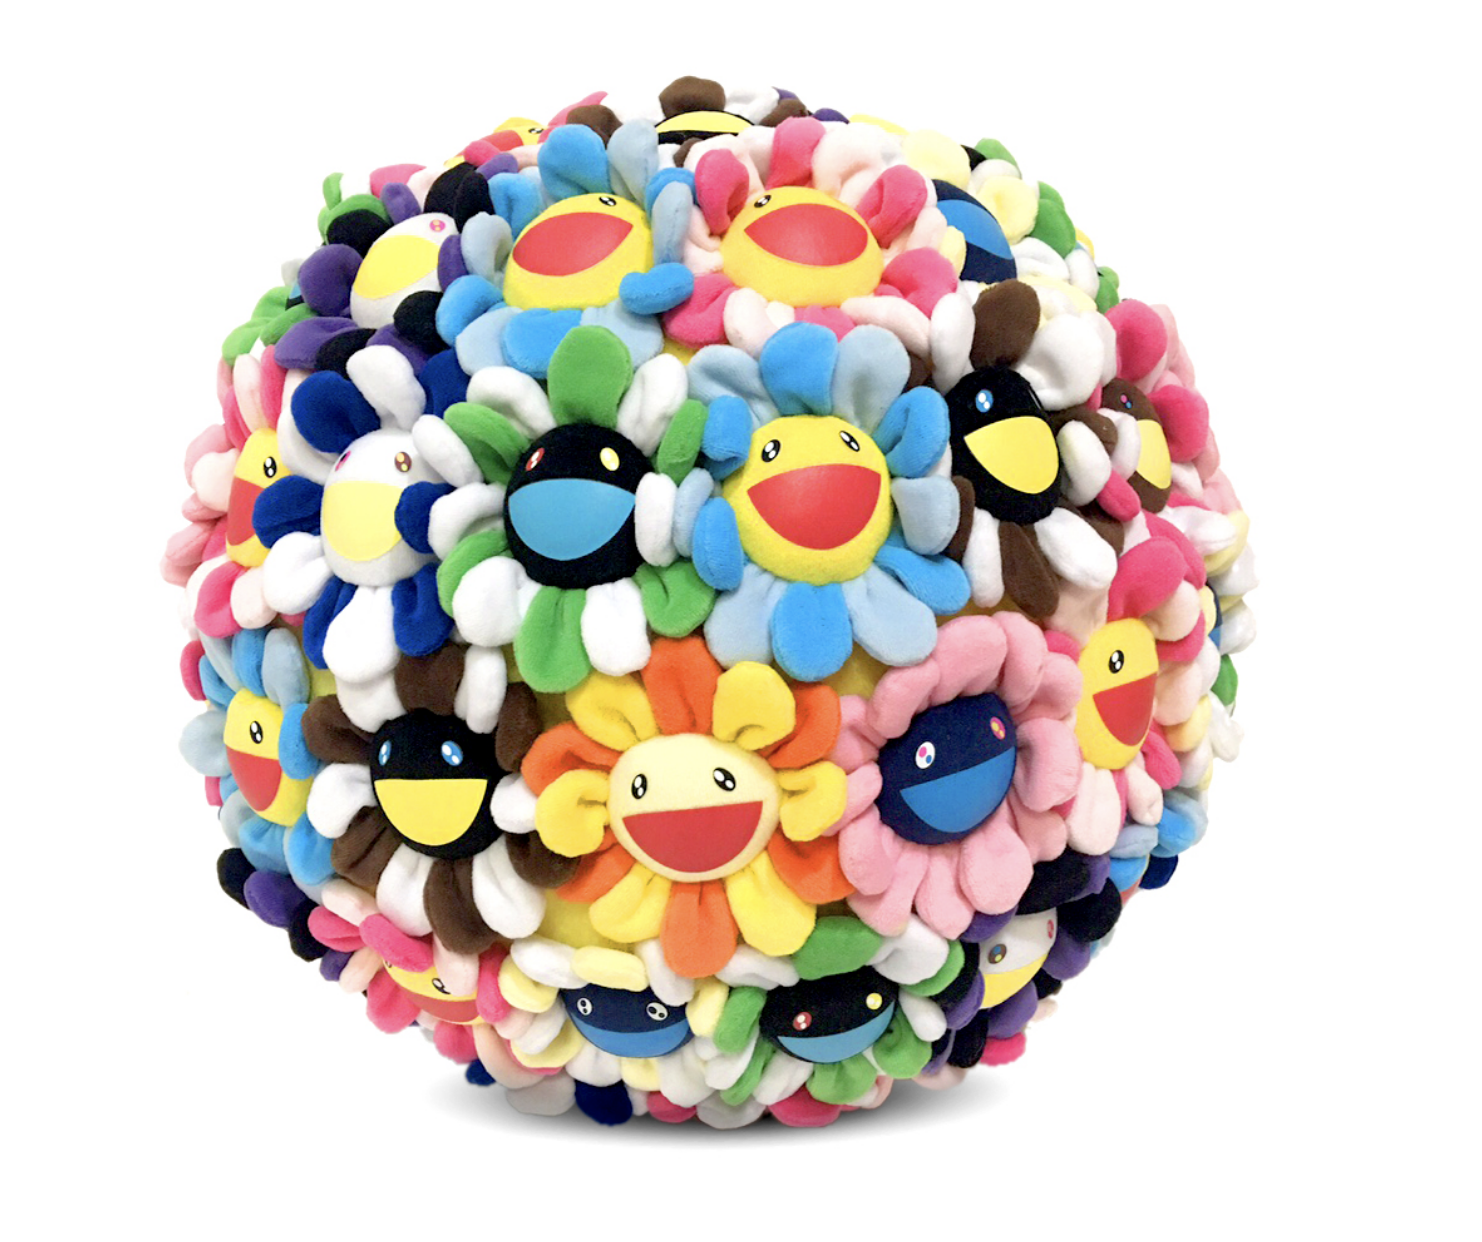 Takashi Murakami Plush Flower Ball Medium 40cm eBay